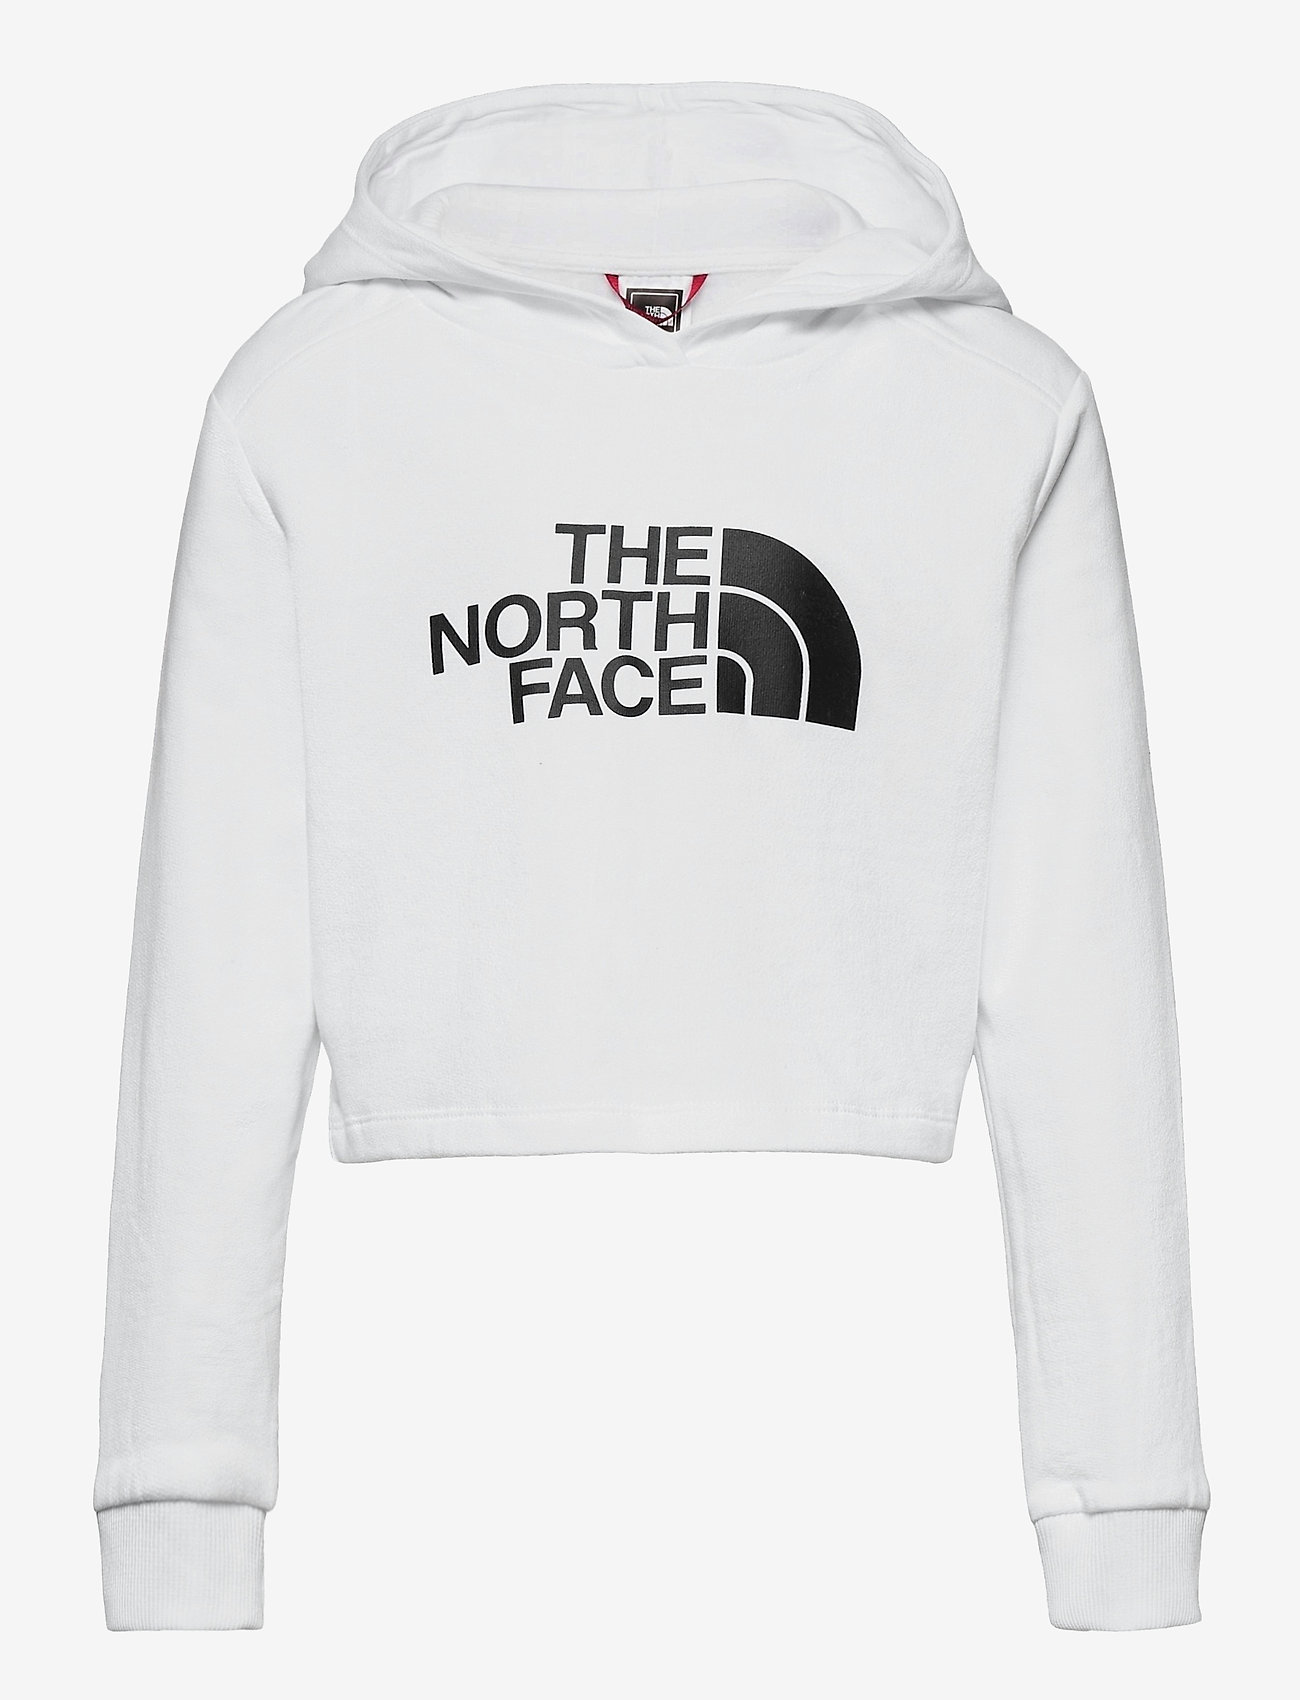 The North Face - G DREW PEAK CROPPED P/O HOODIE - hoodies - tnf white - 0